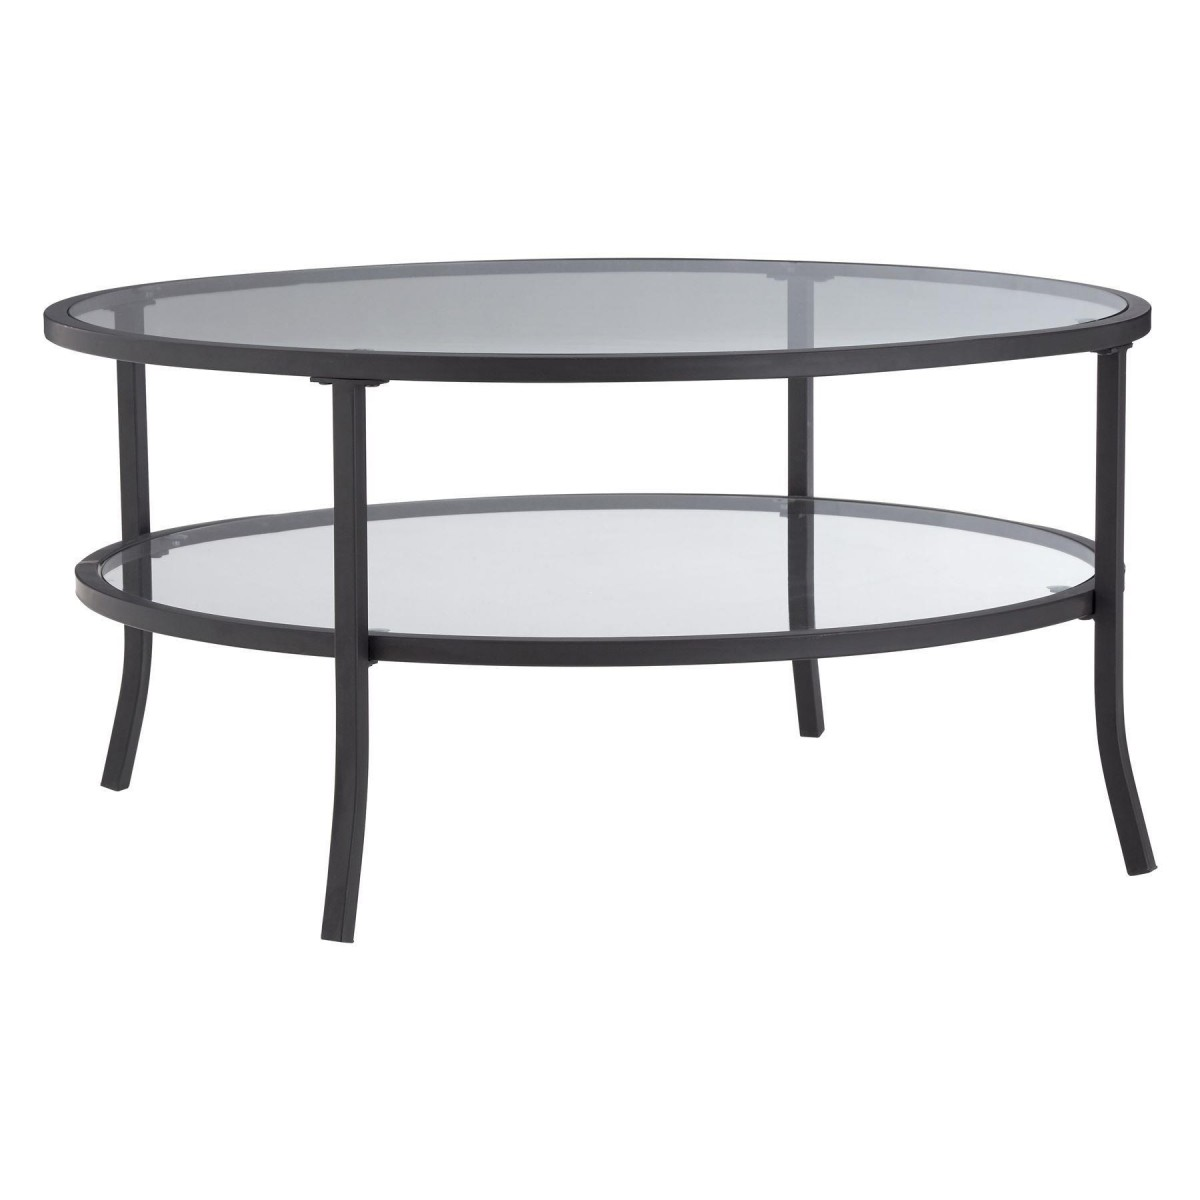 Rubix Round Coffee Table Tempered Glass Metal Frame Black Powder Coated Frame